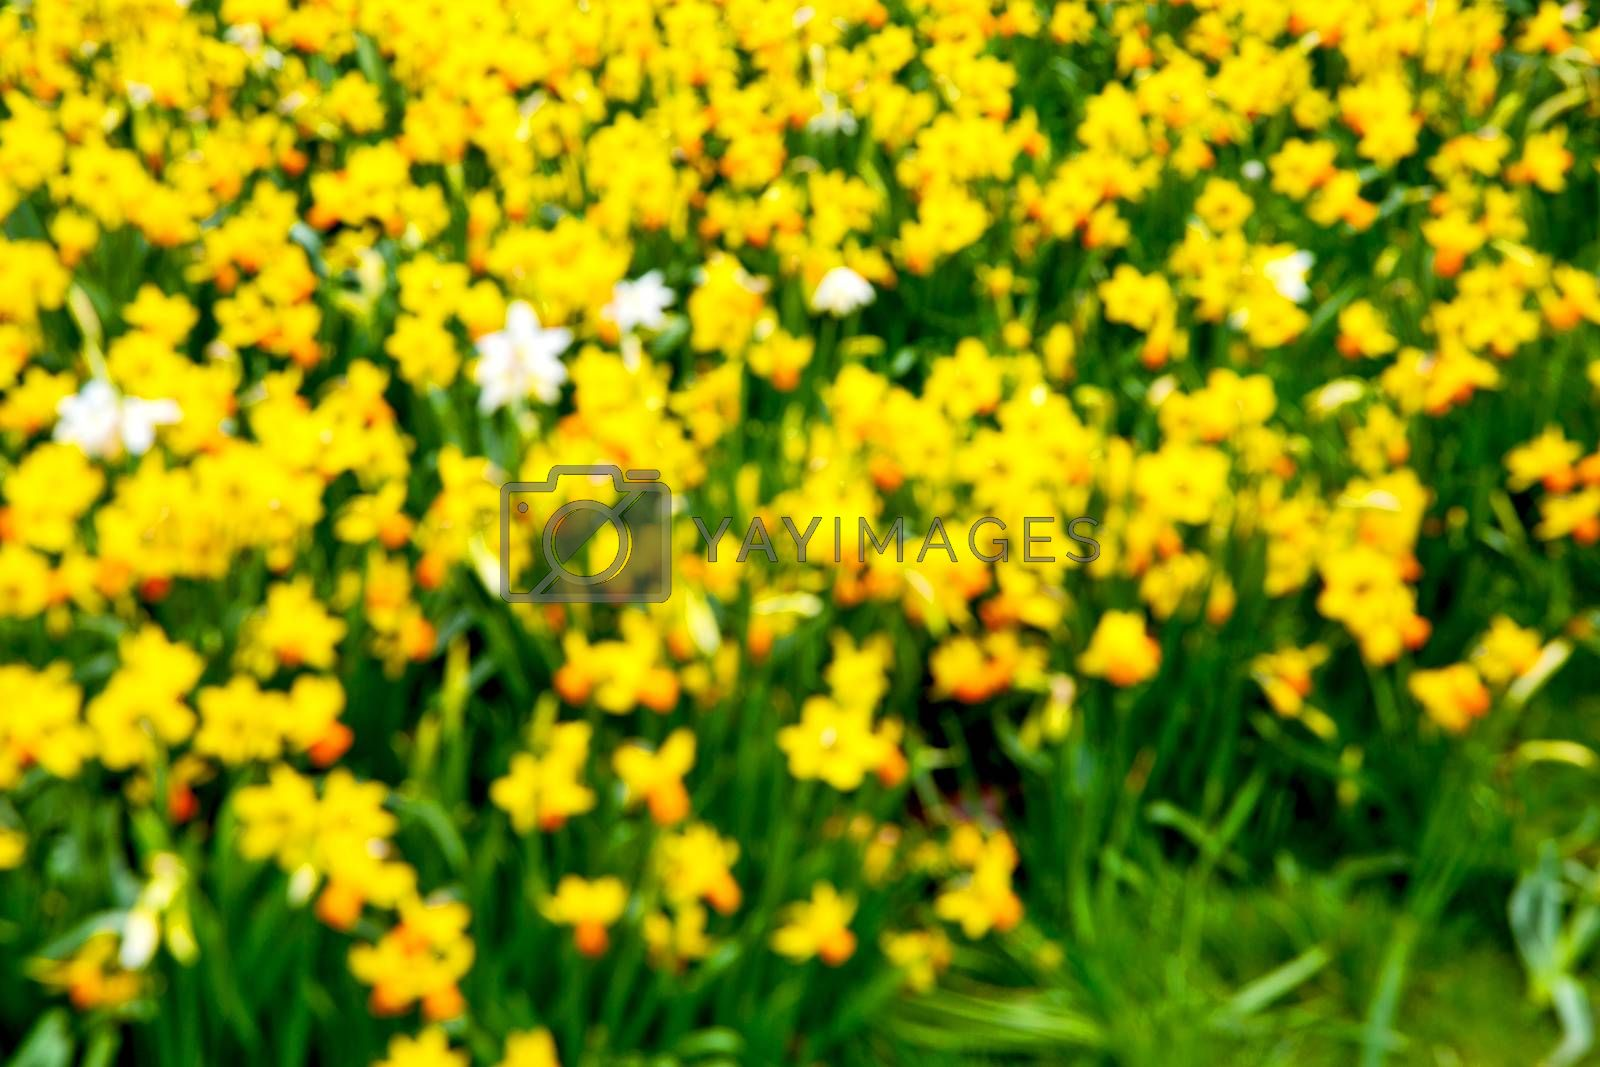 white in london yellow flower field nature   by lkpro